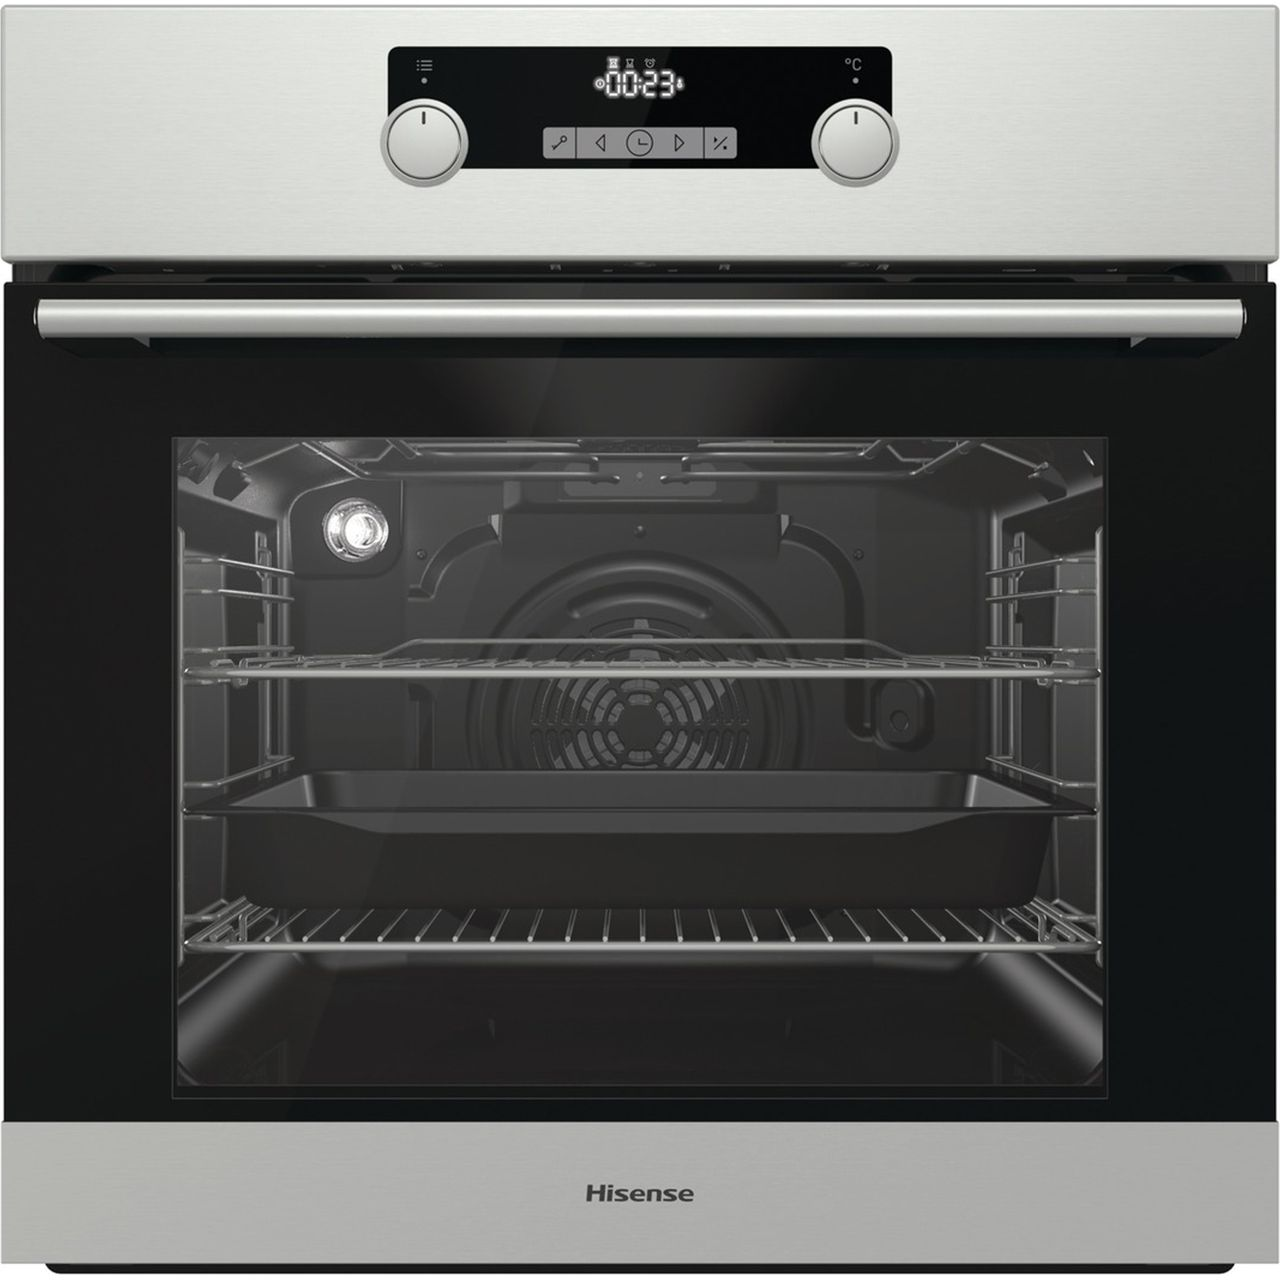 Hisense Electric Single Oven - Stainless Steel - A Rated